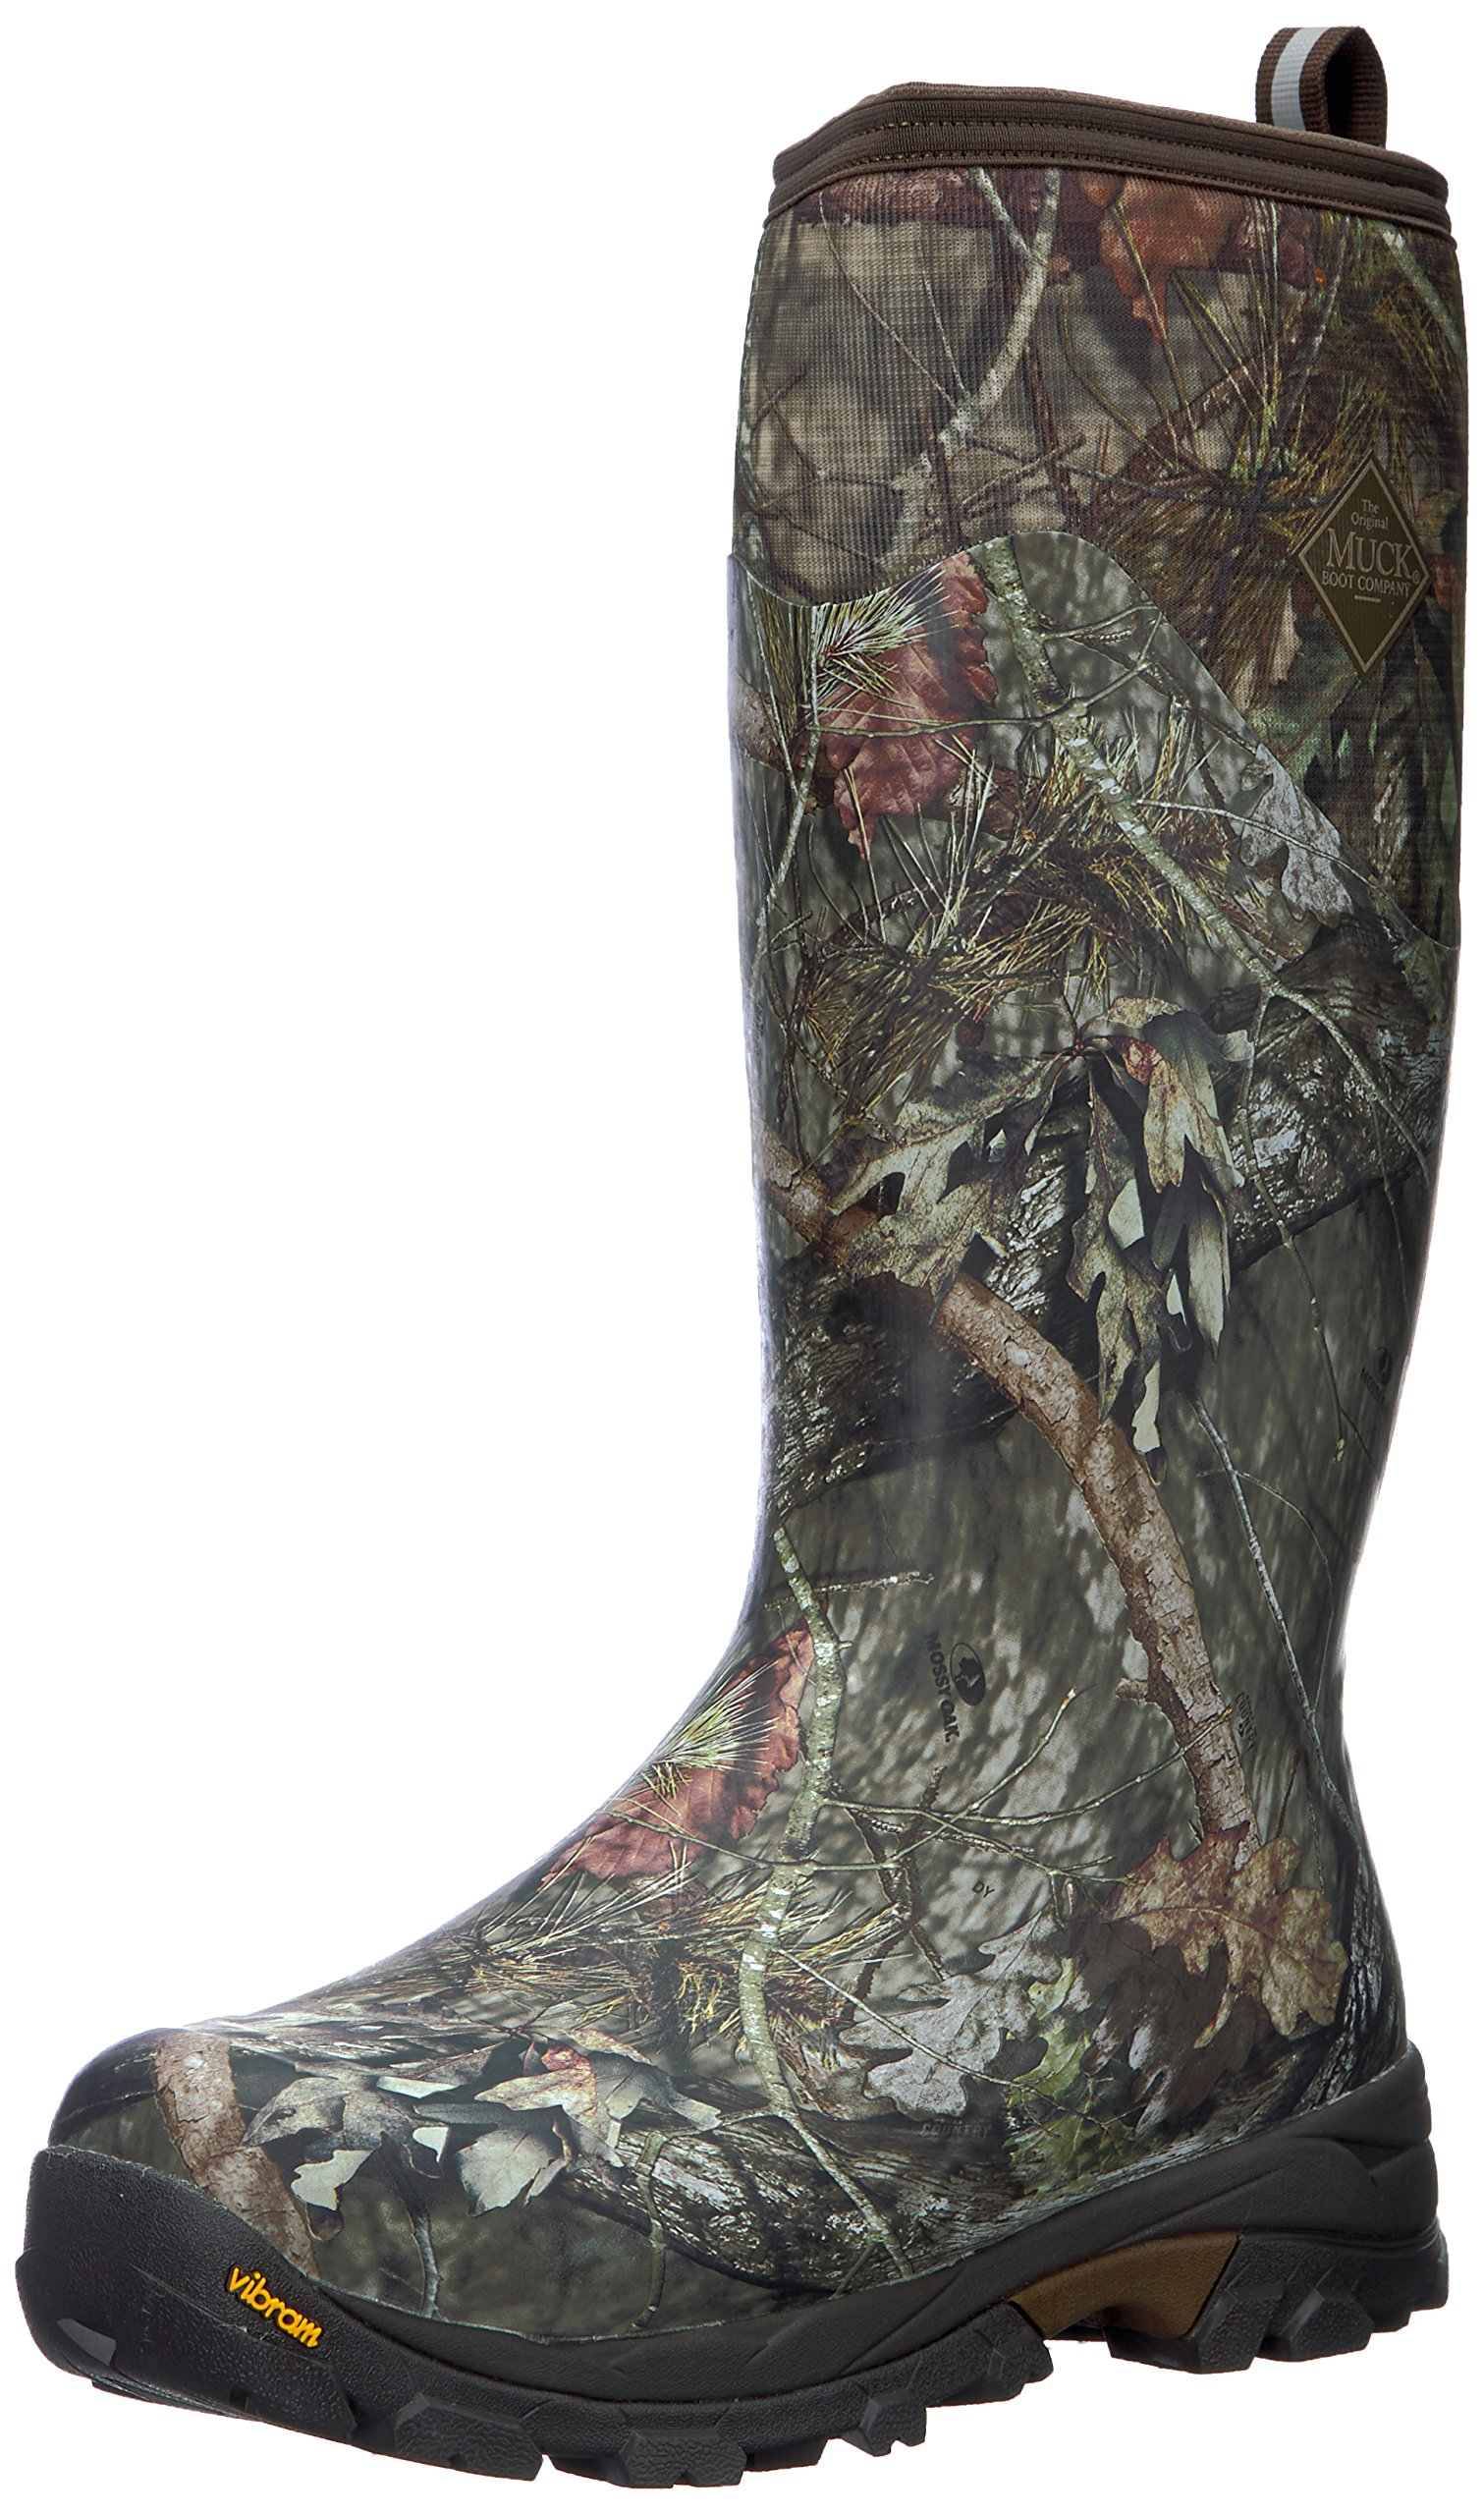 Muck Woody Arctic Ice Extreme Conditions Men's Winter Hunting Boots with Arctic Grip Outsole